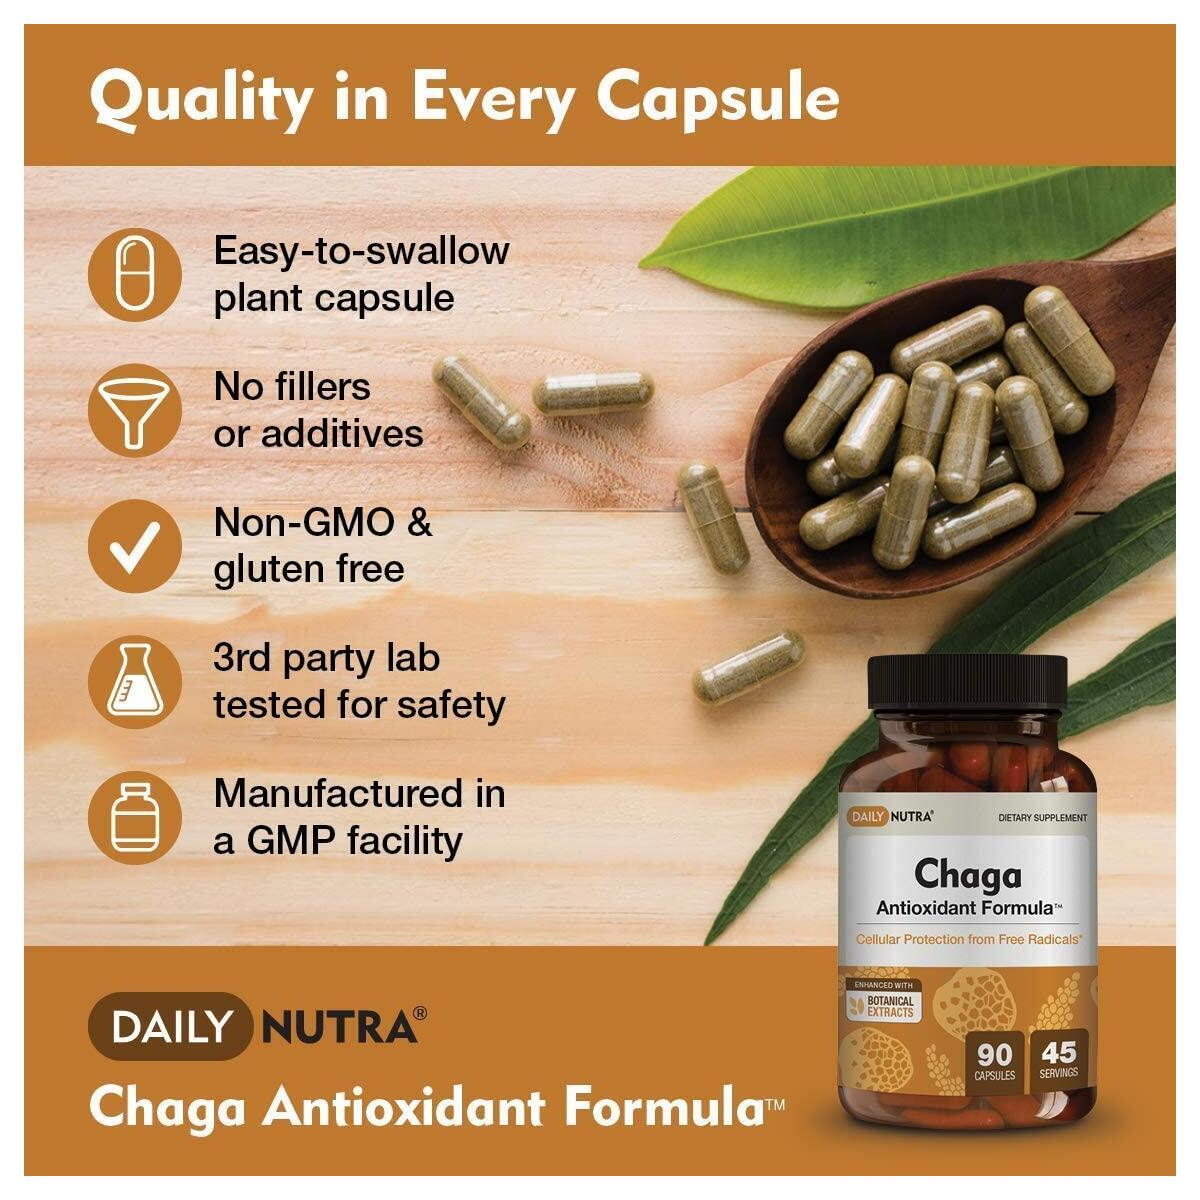 Chaga Antioxidant Formula by DailyNutra - Superfood Supplement - Protection from Free Radicals and Stress | Organic Mushroom Extract with Goji Berry, Sumac, Amla, and Clove (90 Capsules)